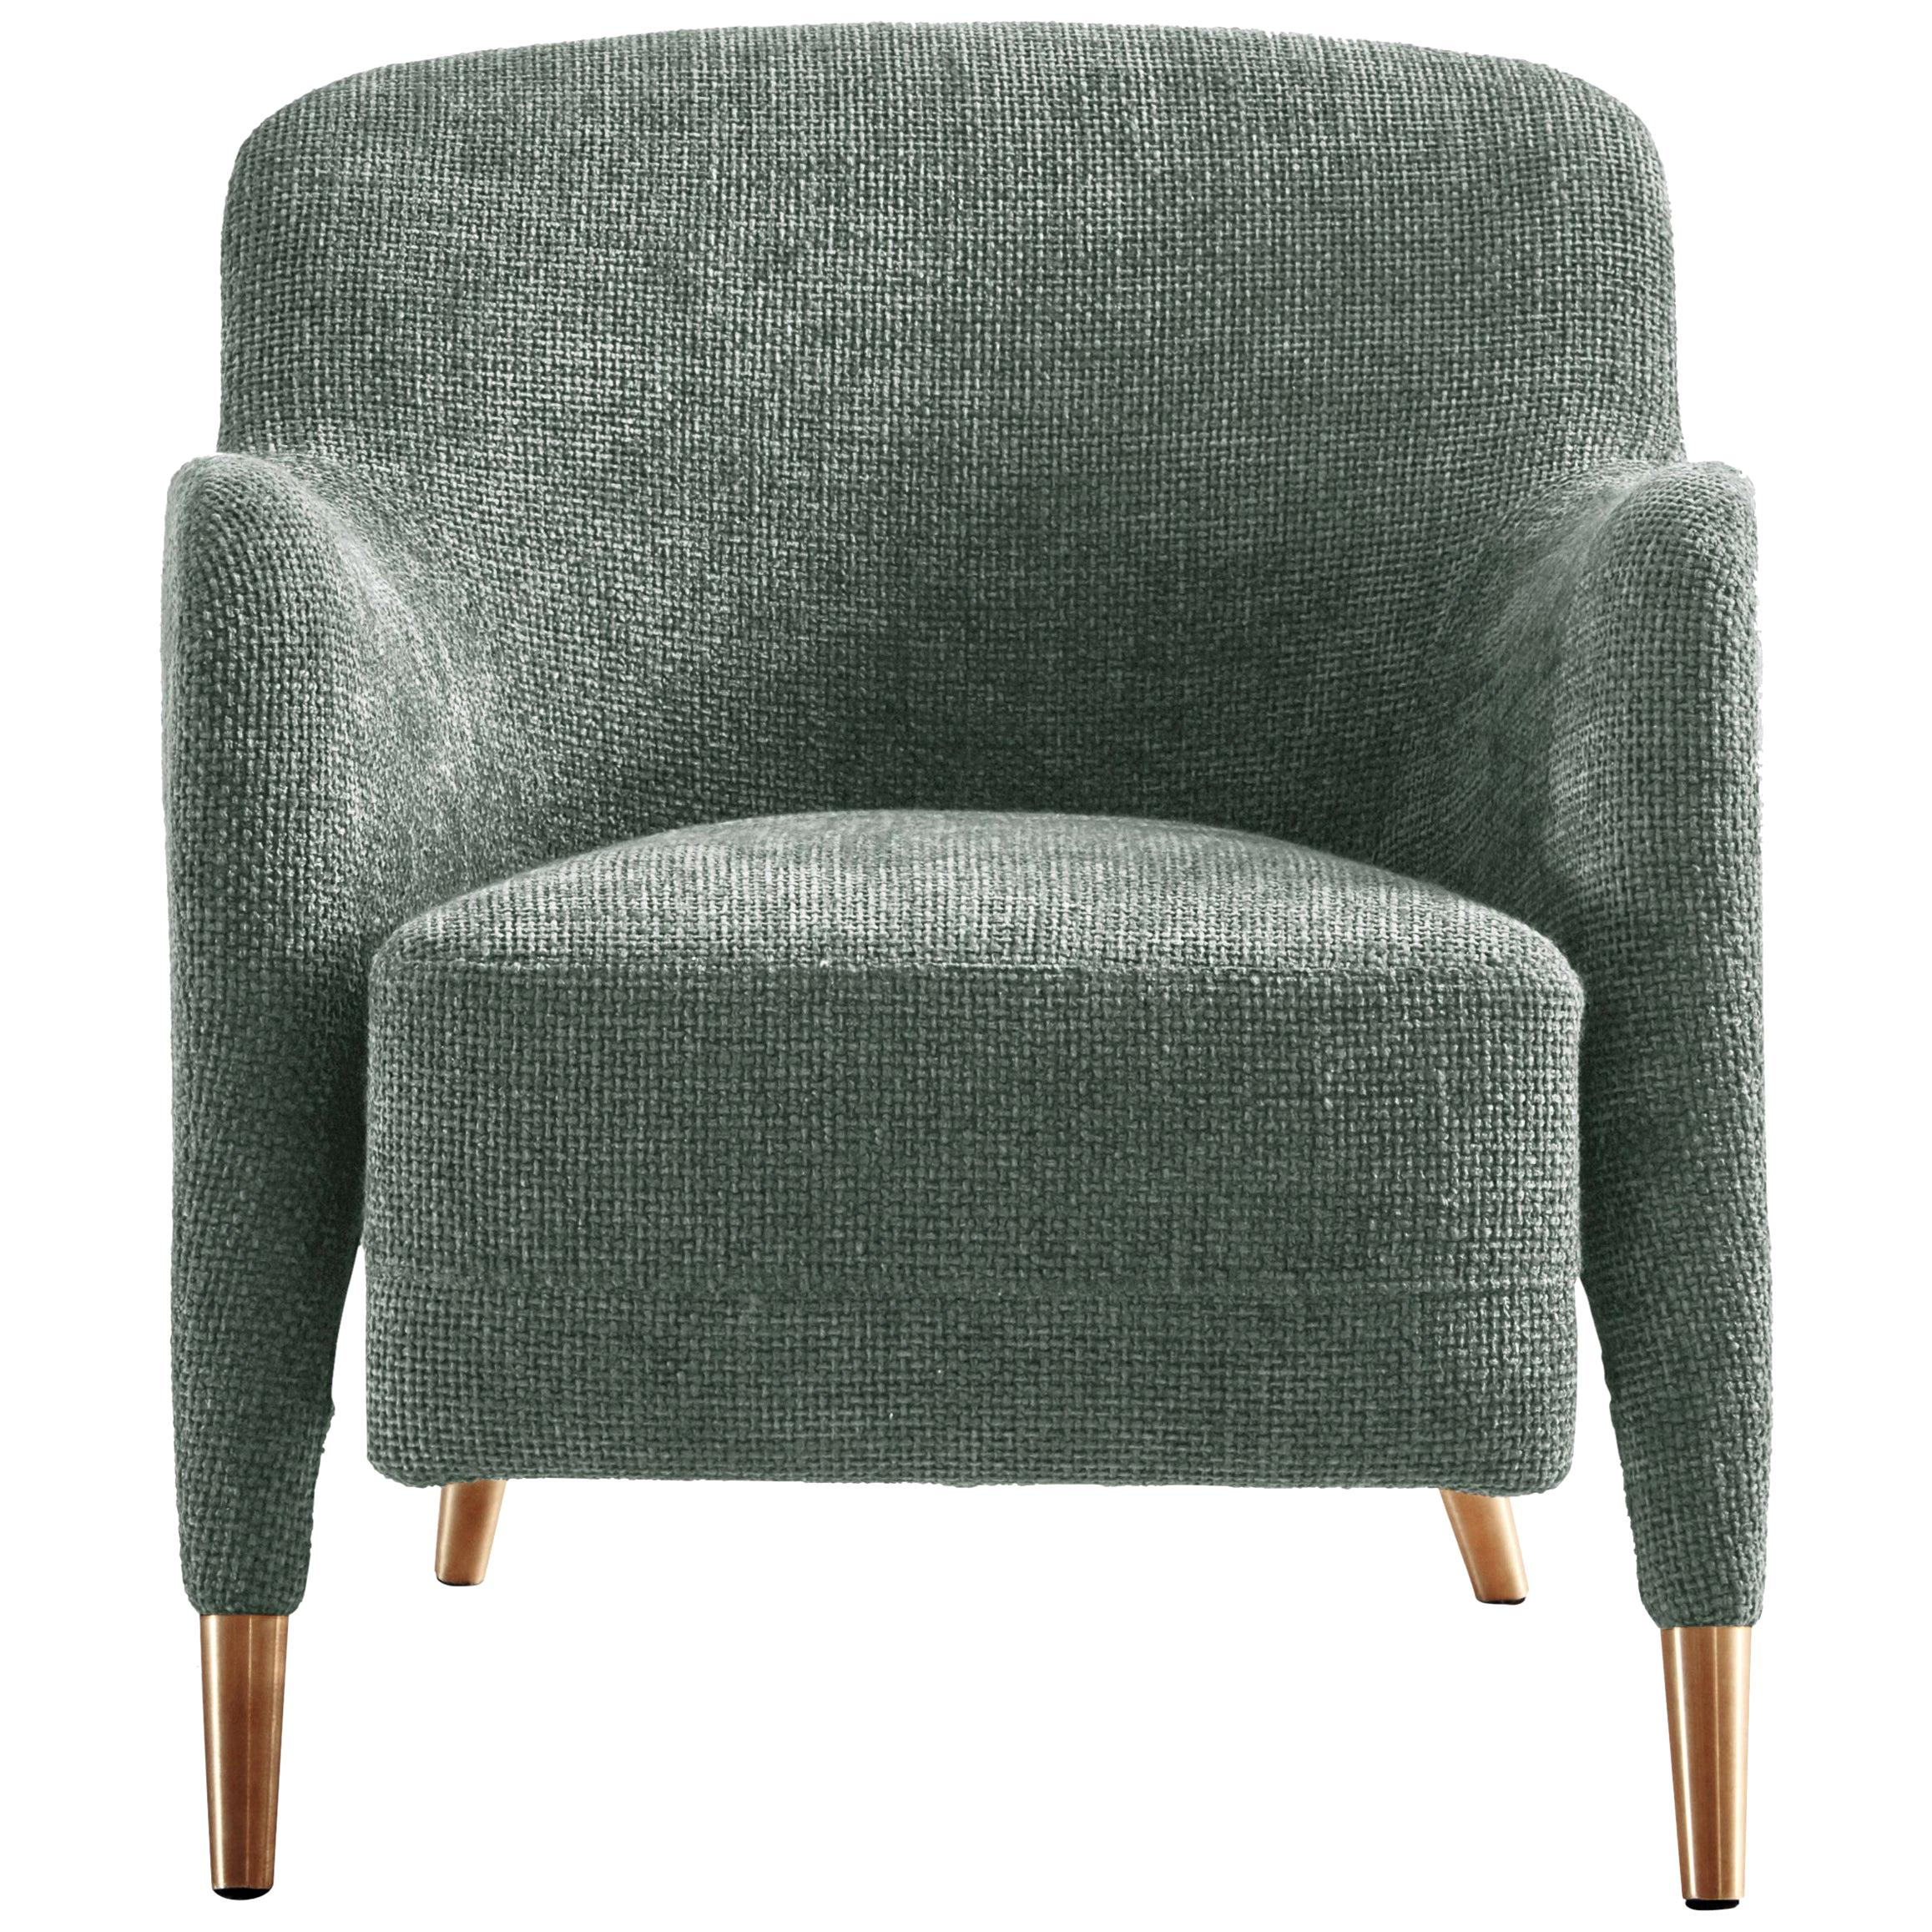 Molteni&C D.151.4 Armchair in Light Grey Linen Fabric by Gio Ponti